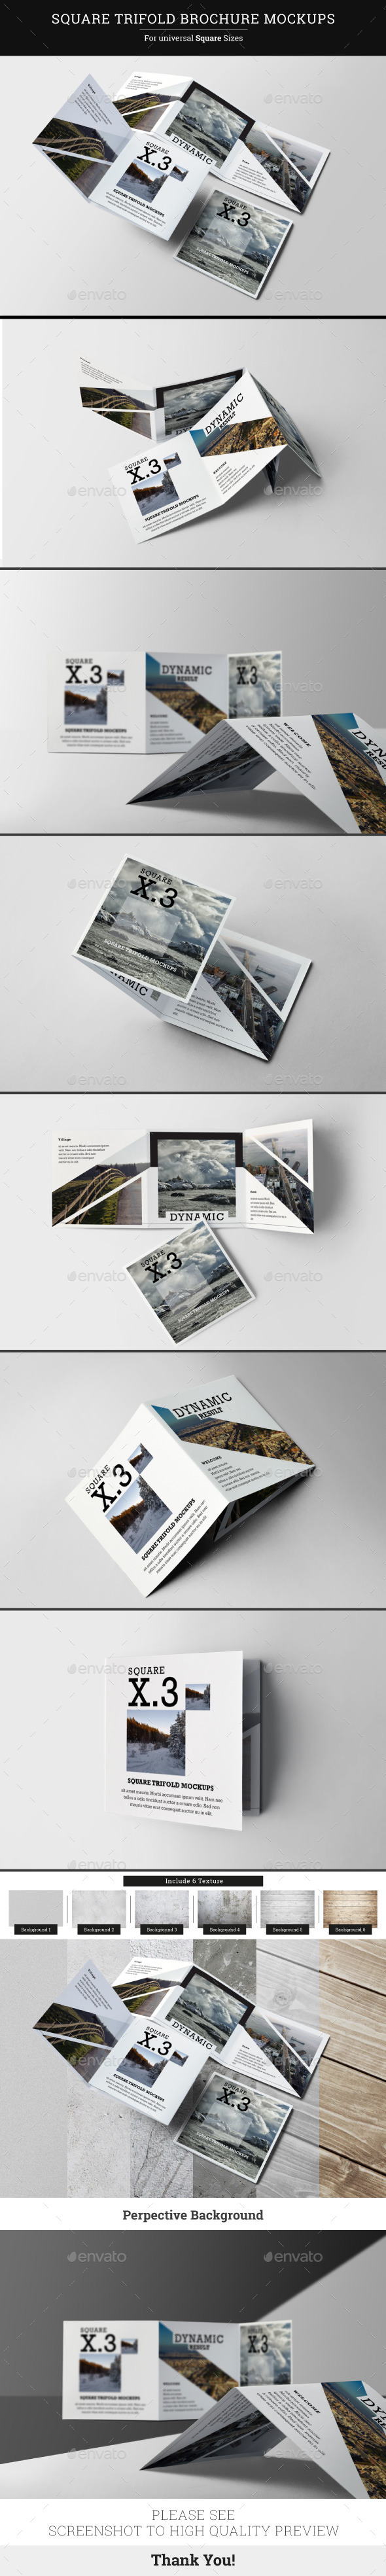 Tri-fold Graphics, Designs & Templates from GraphicRiver